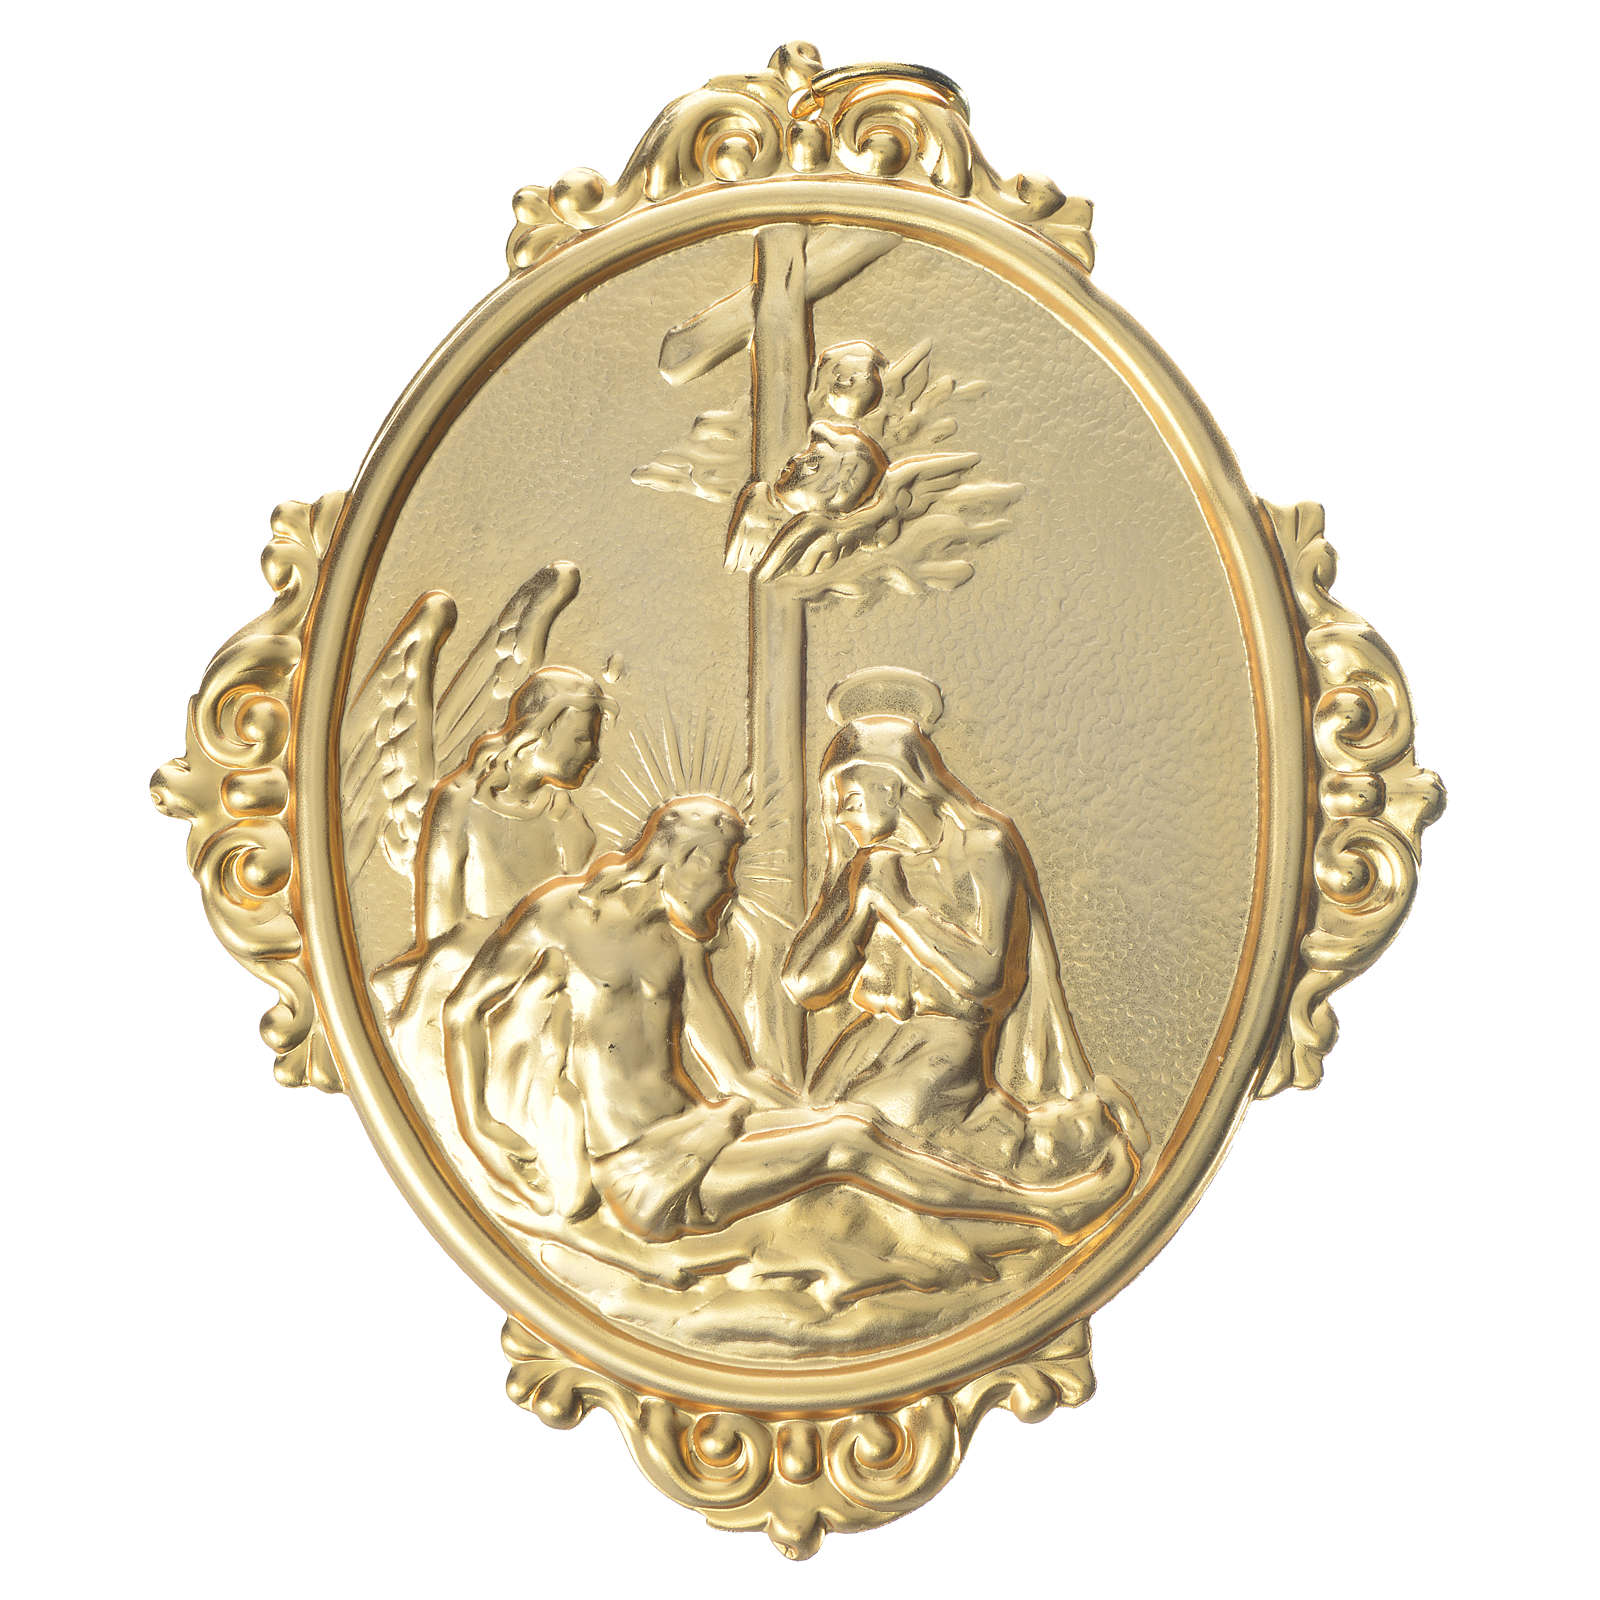 Confraternity Medal in brass, Deposition scene 3